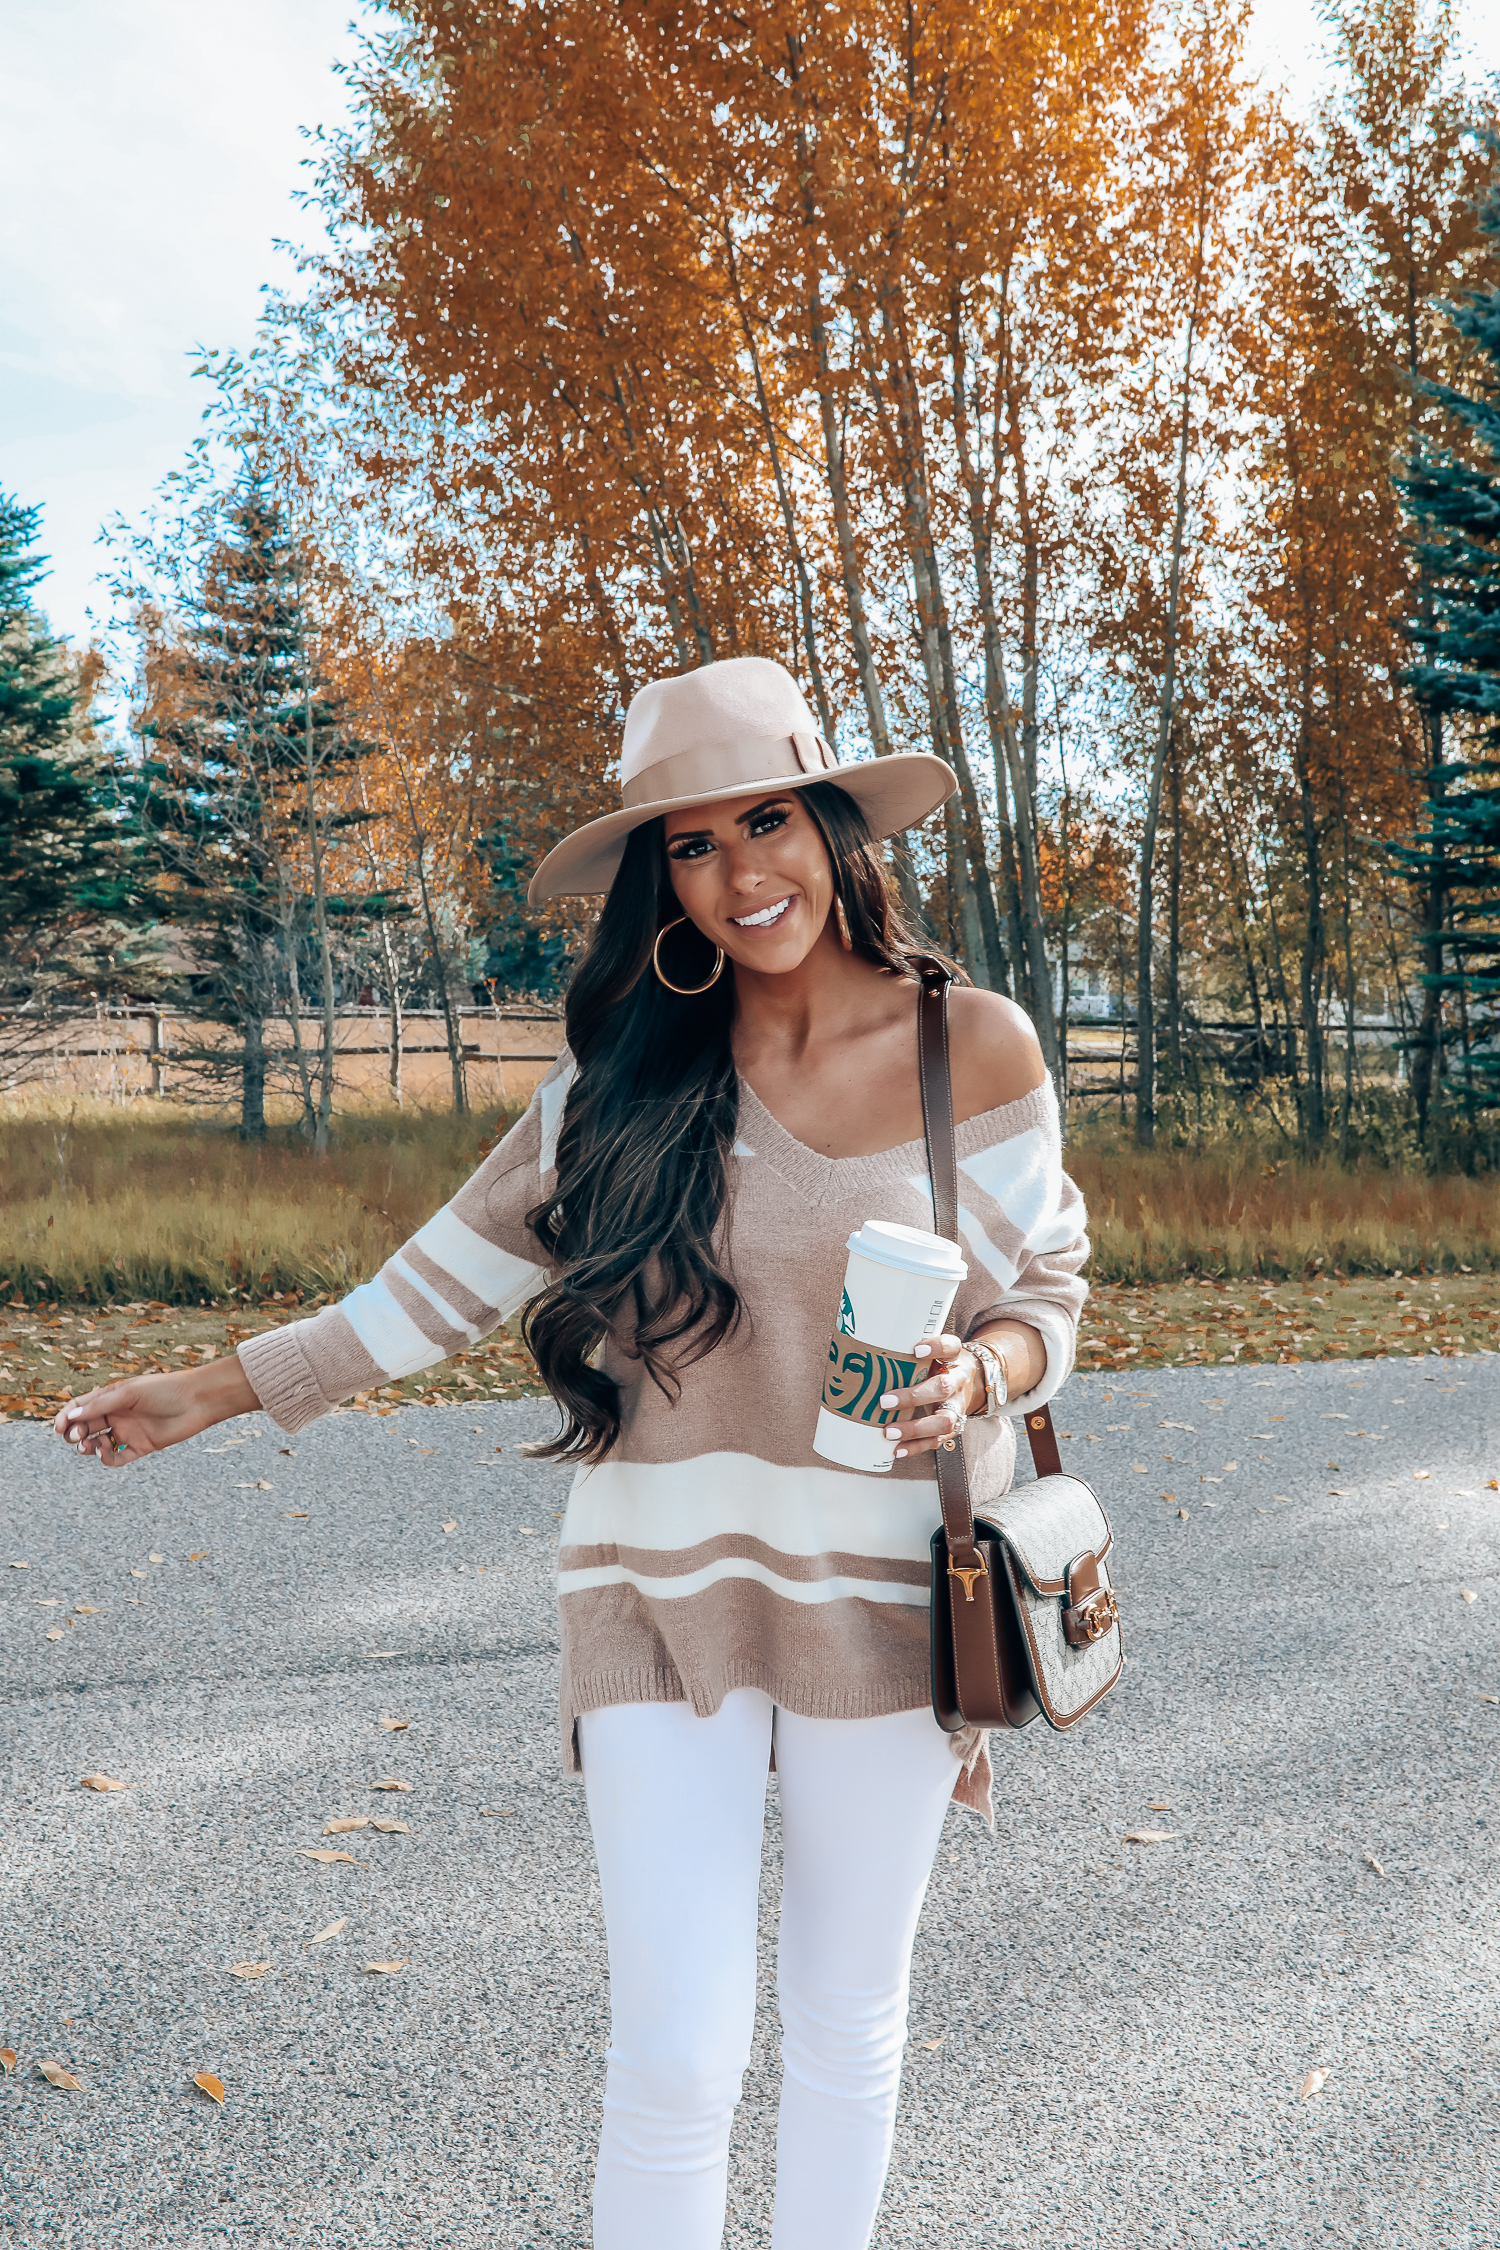 Rag and Bone White Jeans style for Fall by top US fashion blog, The Sweetest Thing: image of a woman wearing Rag and Bone white denim jeans, a Red Dress Boutique off the shoulder striped sweater, Gianni Bini boots, Gucci 1955 shoulder bag, Brixton Panama hat, Rolex watch, Cartier bracelets, Argento Vivo earrings, and a Free People ring | fall fashion outfits pinterest 2019, gucci vintage 1955 bag, fall outfits white denim, red dress boutique sweater, brixton hats-5